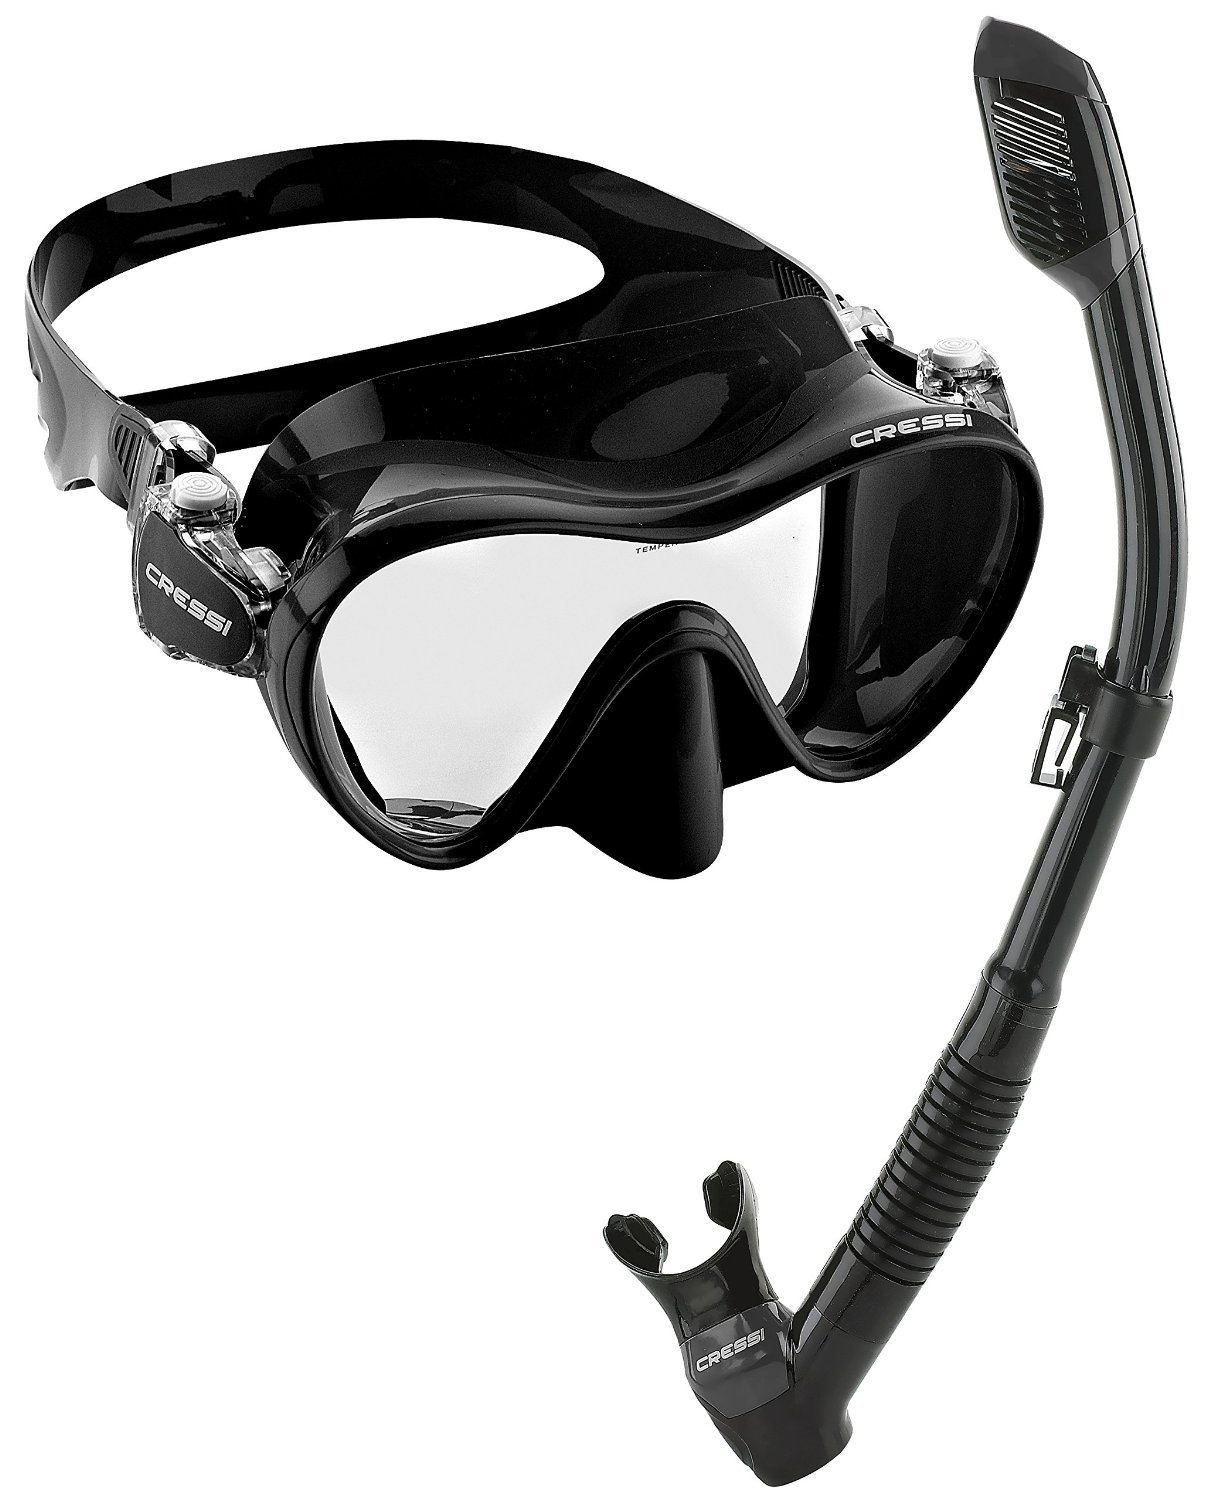 Cressi Scuba Diving Snorkeling Freediving Mask Snorkel Set, All Black by Cressi